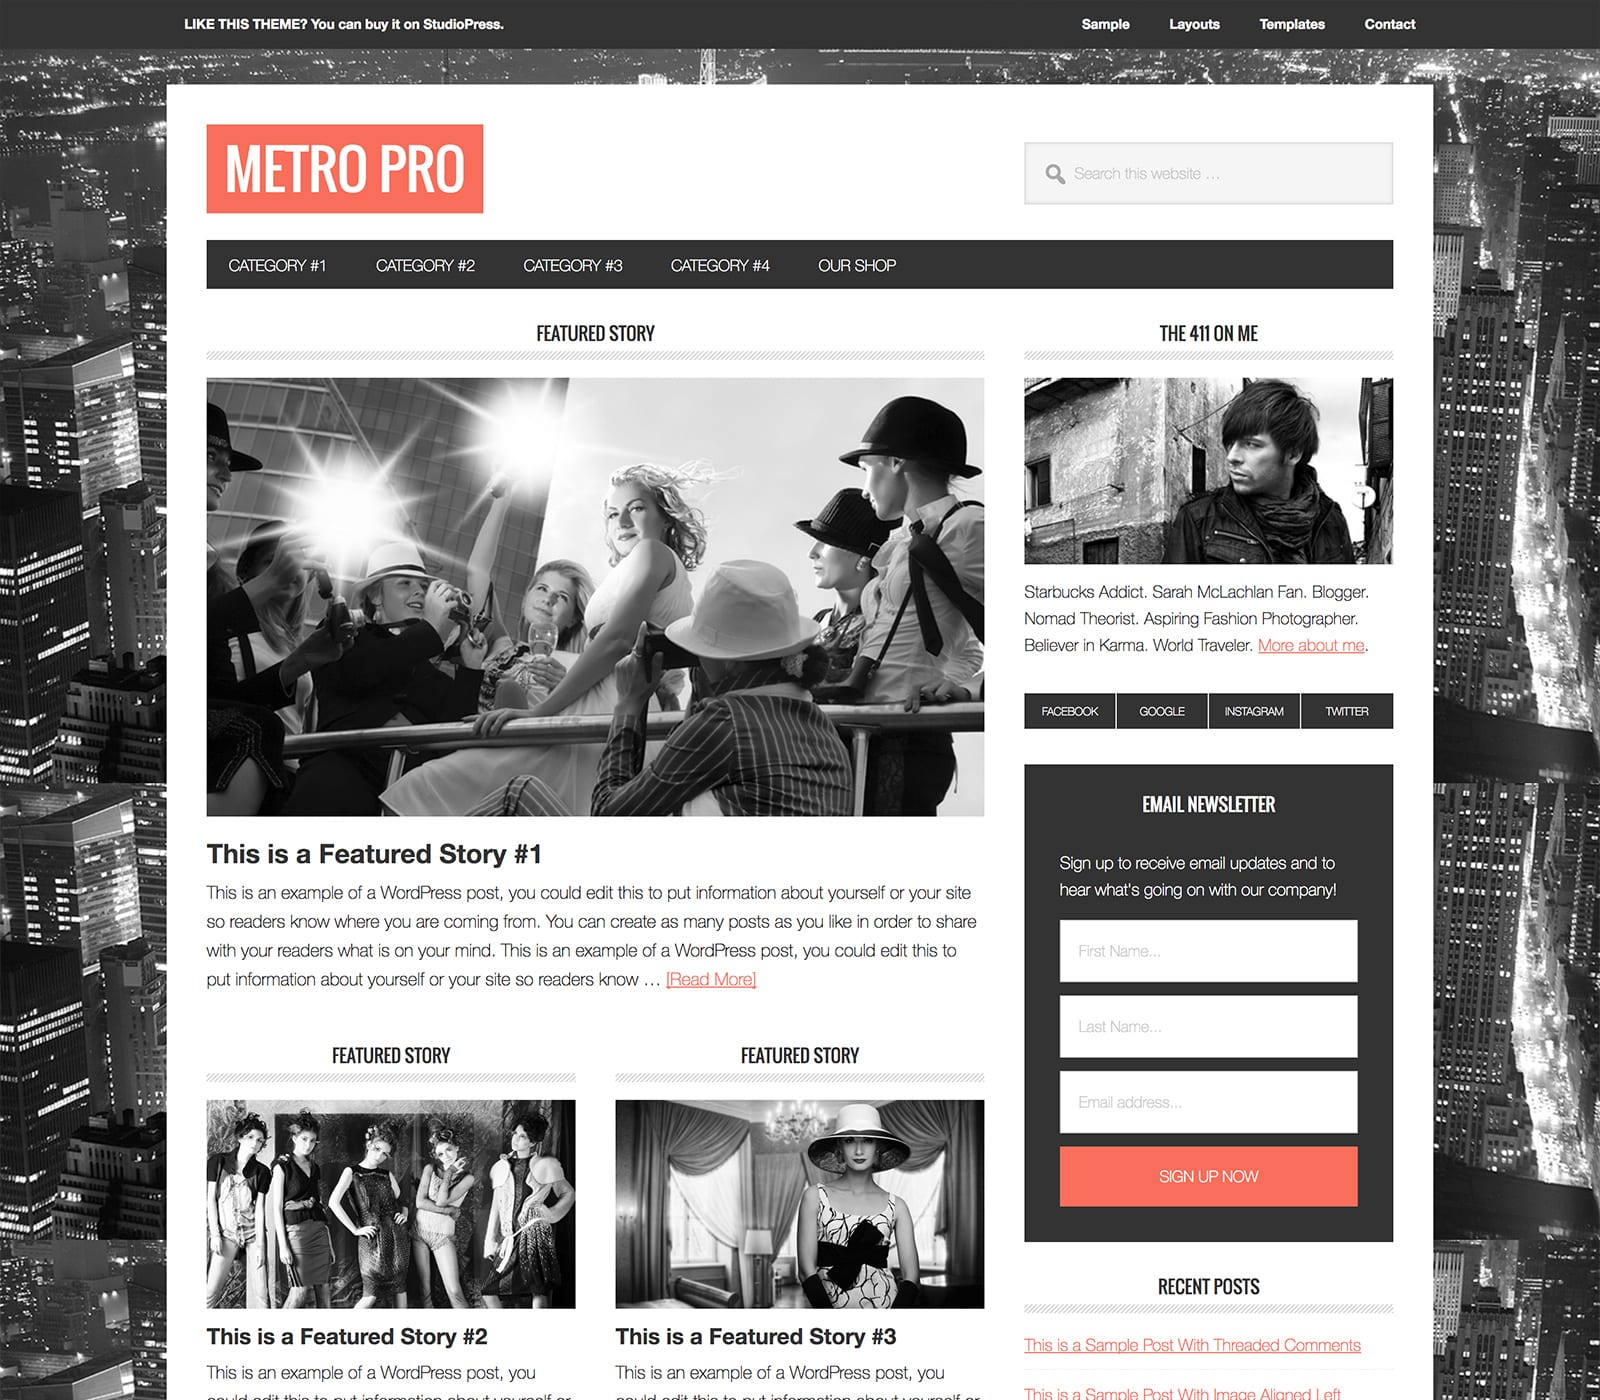 The Metro Pro WordPress theme offers a magazine-style look with a modern design. It's optimized for mobile devices and wide-screens. It's sleek and offers social features to build your audience fast.